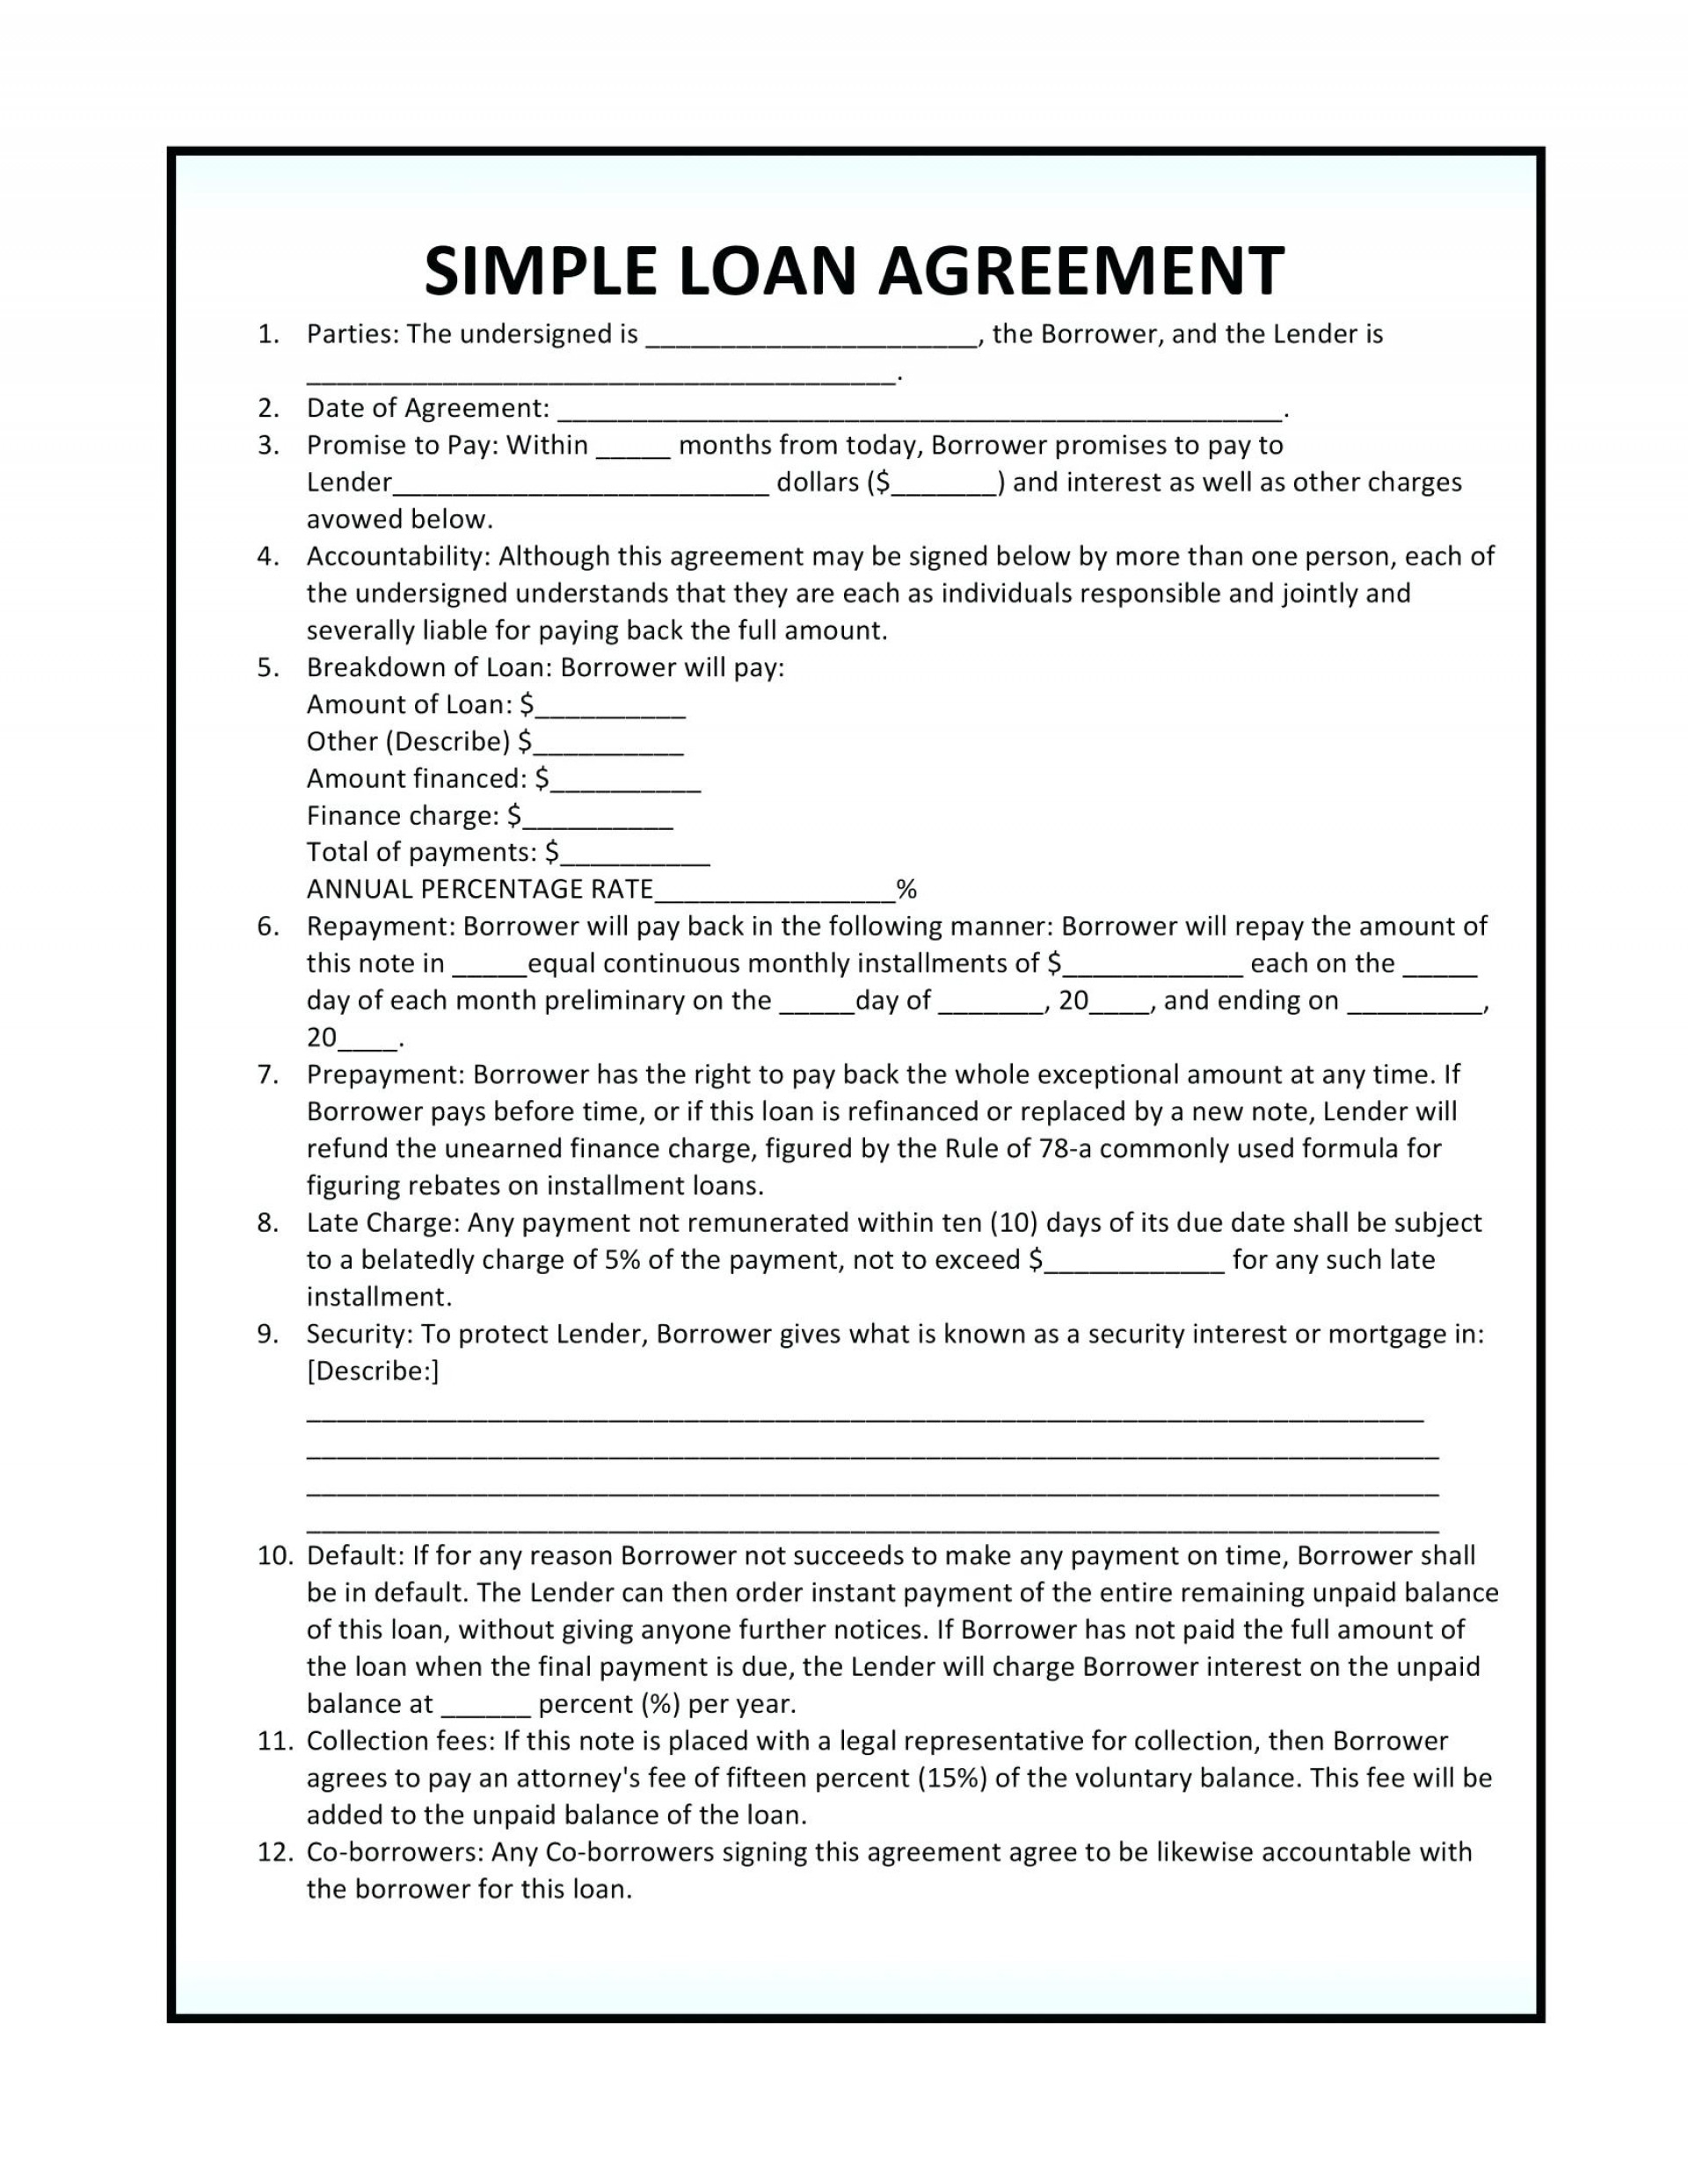 Collateral Agreement Template Bet Contract Unique Simple Loan For Loan Agreement Between Friends Example